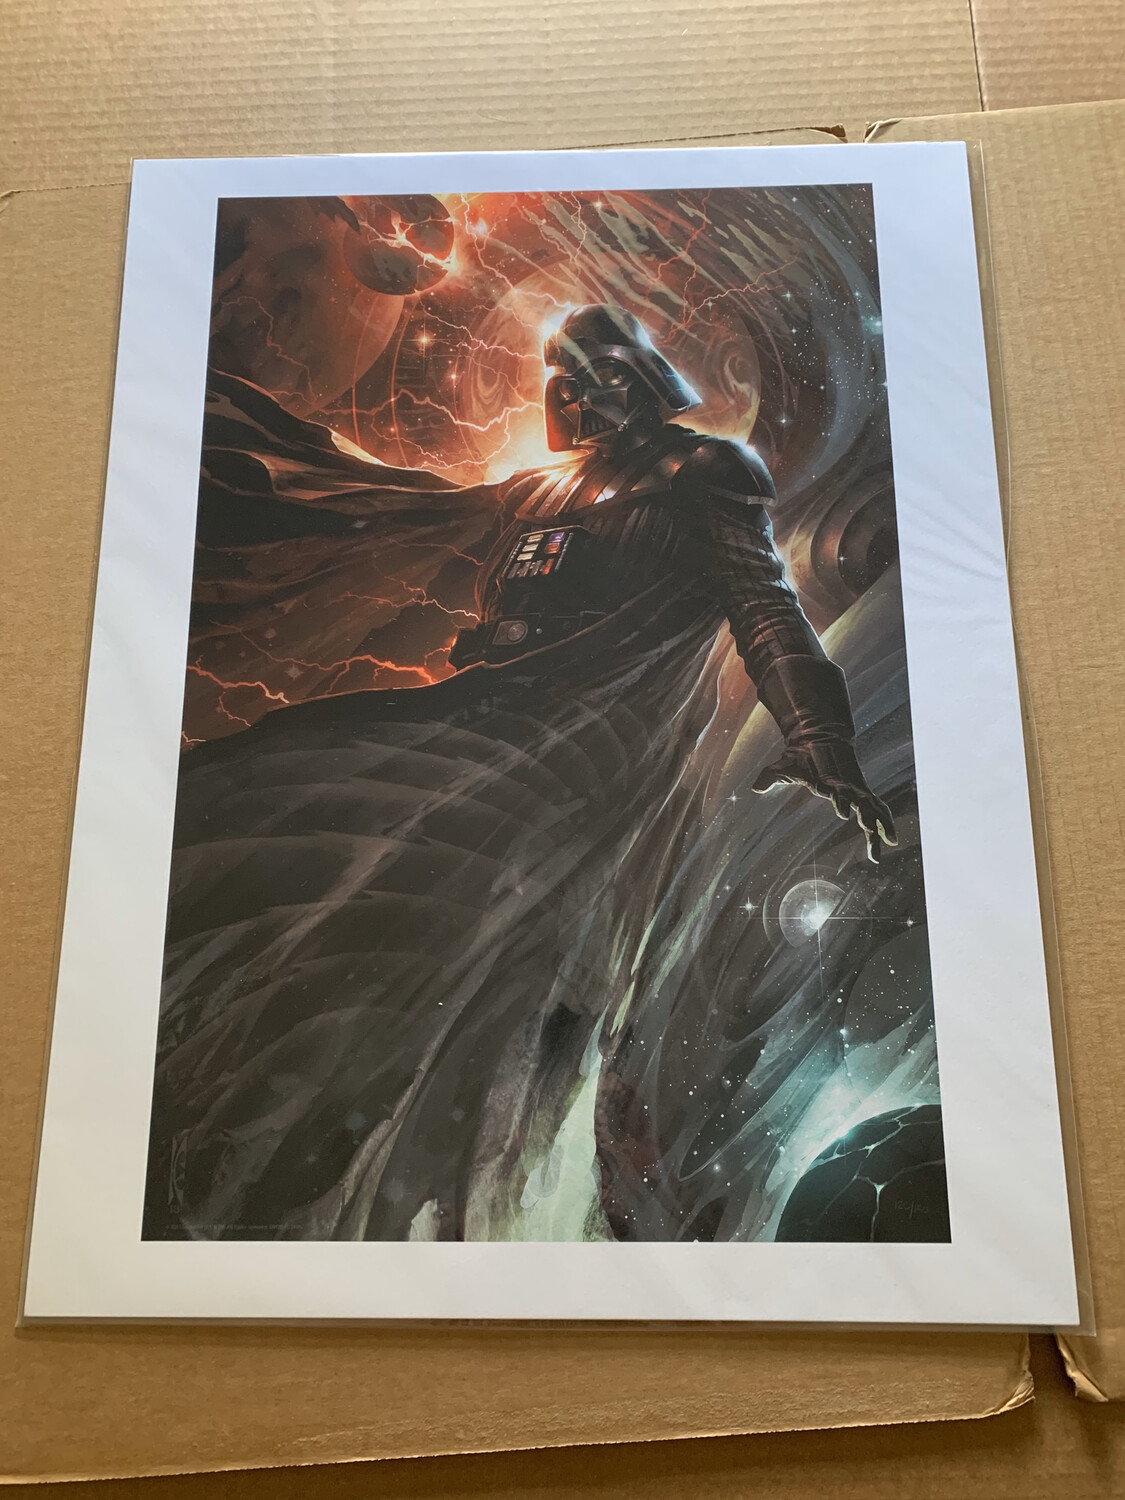 CENTER OF THE STORM #120 OF 150 BY RAYMOND SWANLAND WITH FREE SIGNED DARTH VADER PHOTO